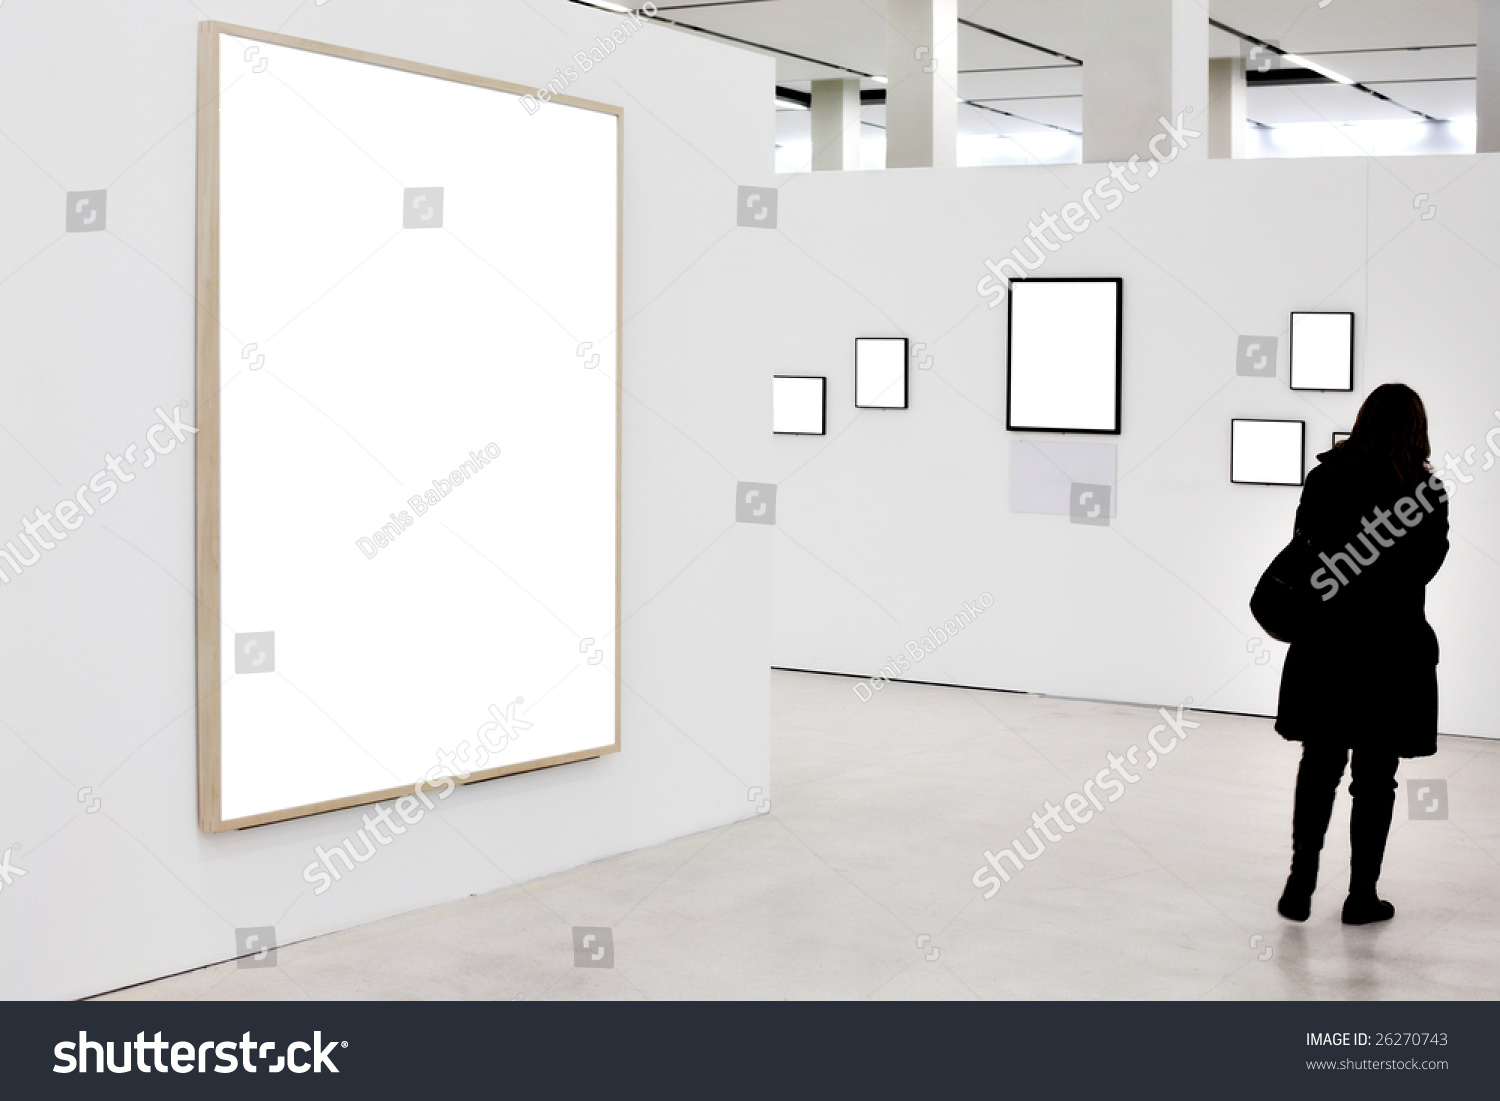 Walls museum empty frames person move stock photo 26270743 walls in museum with empty frames and person move sciox Images